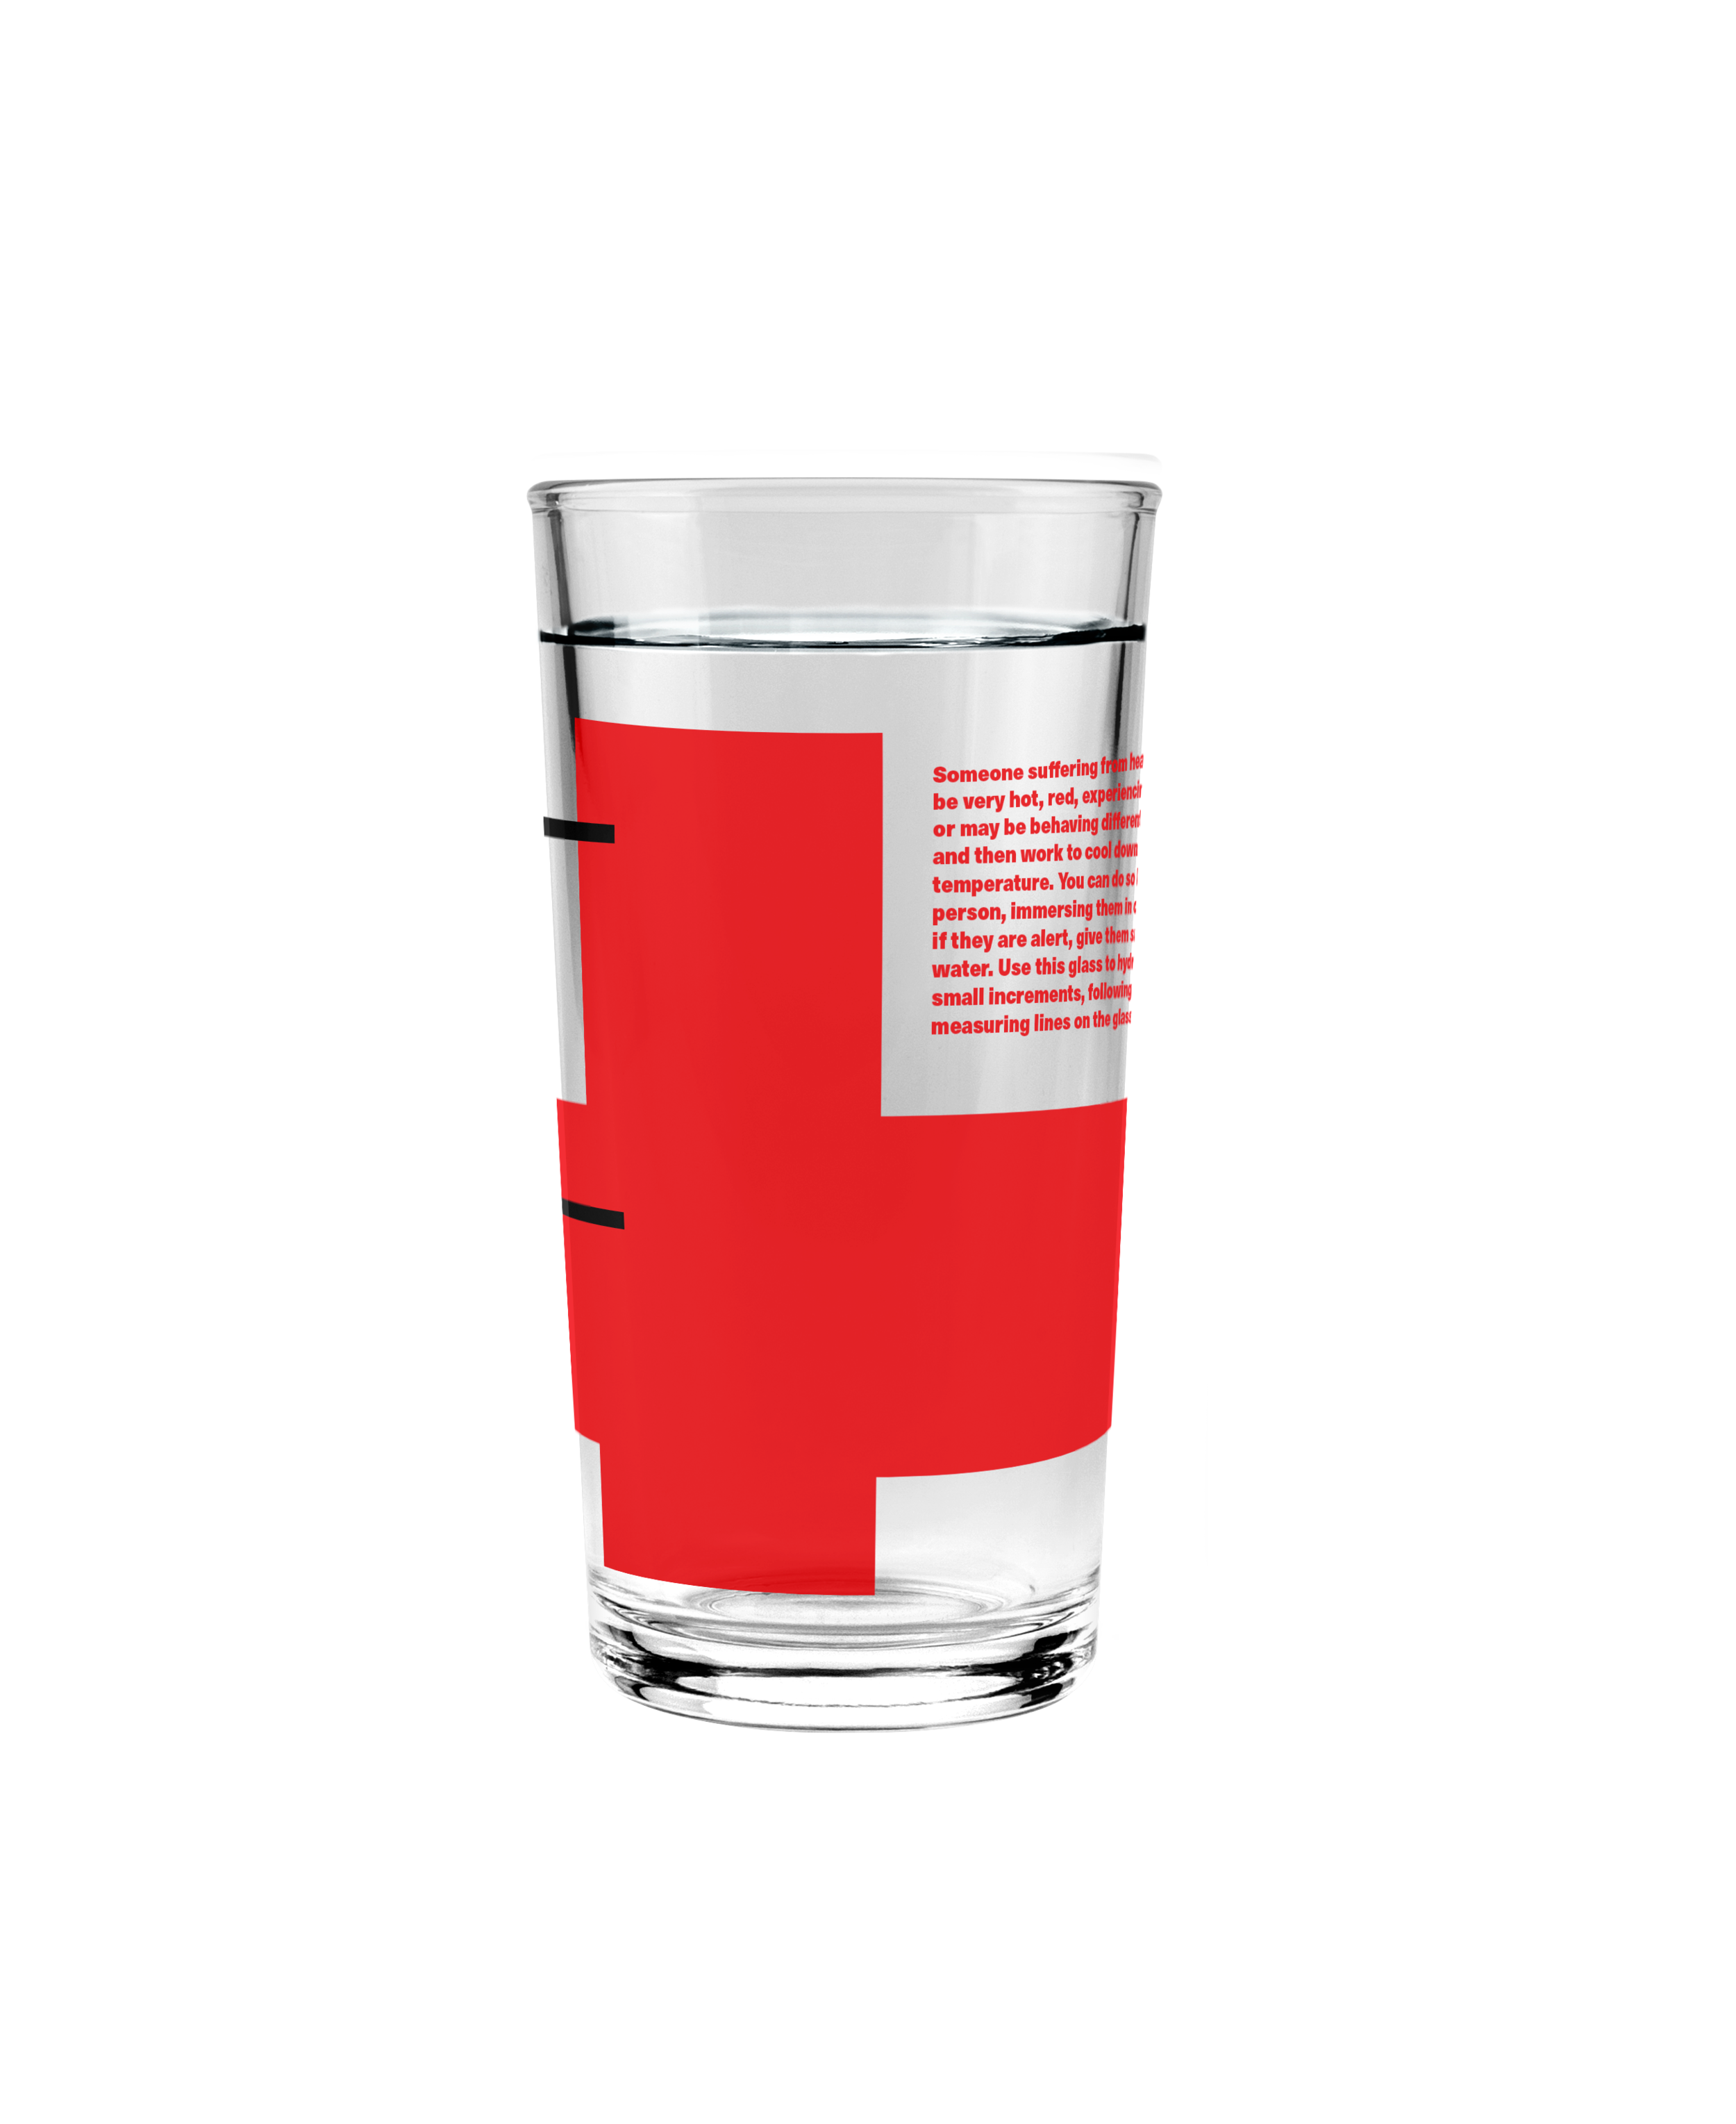 Heat StrokeGlass. - It teaches you the proper amount of water someone having a heat stroke should have.